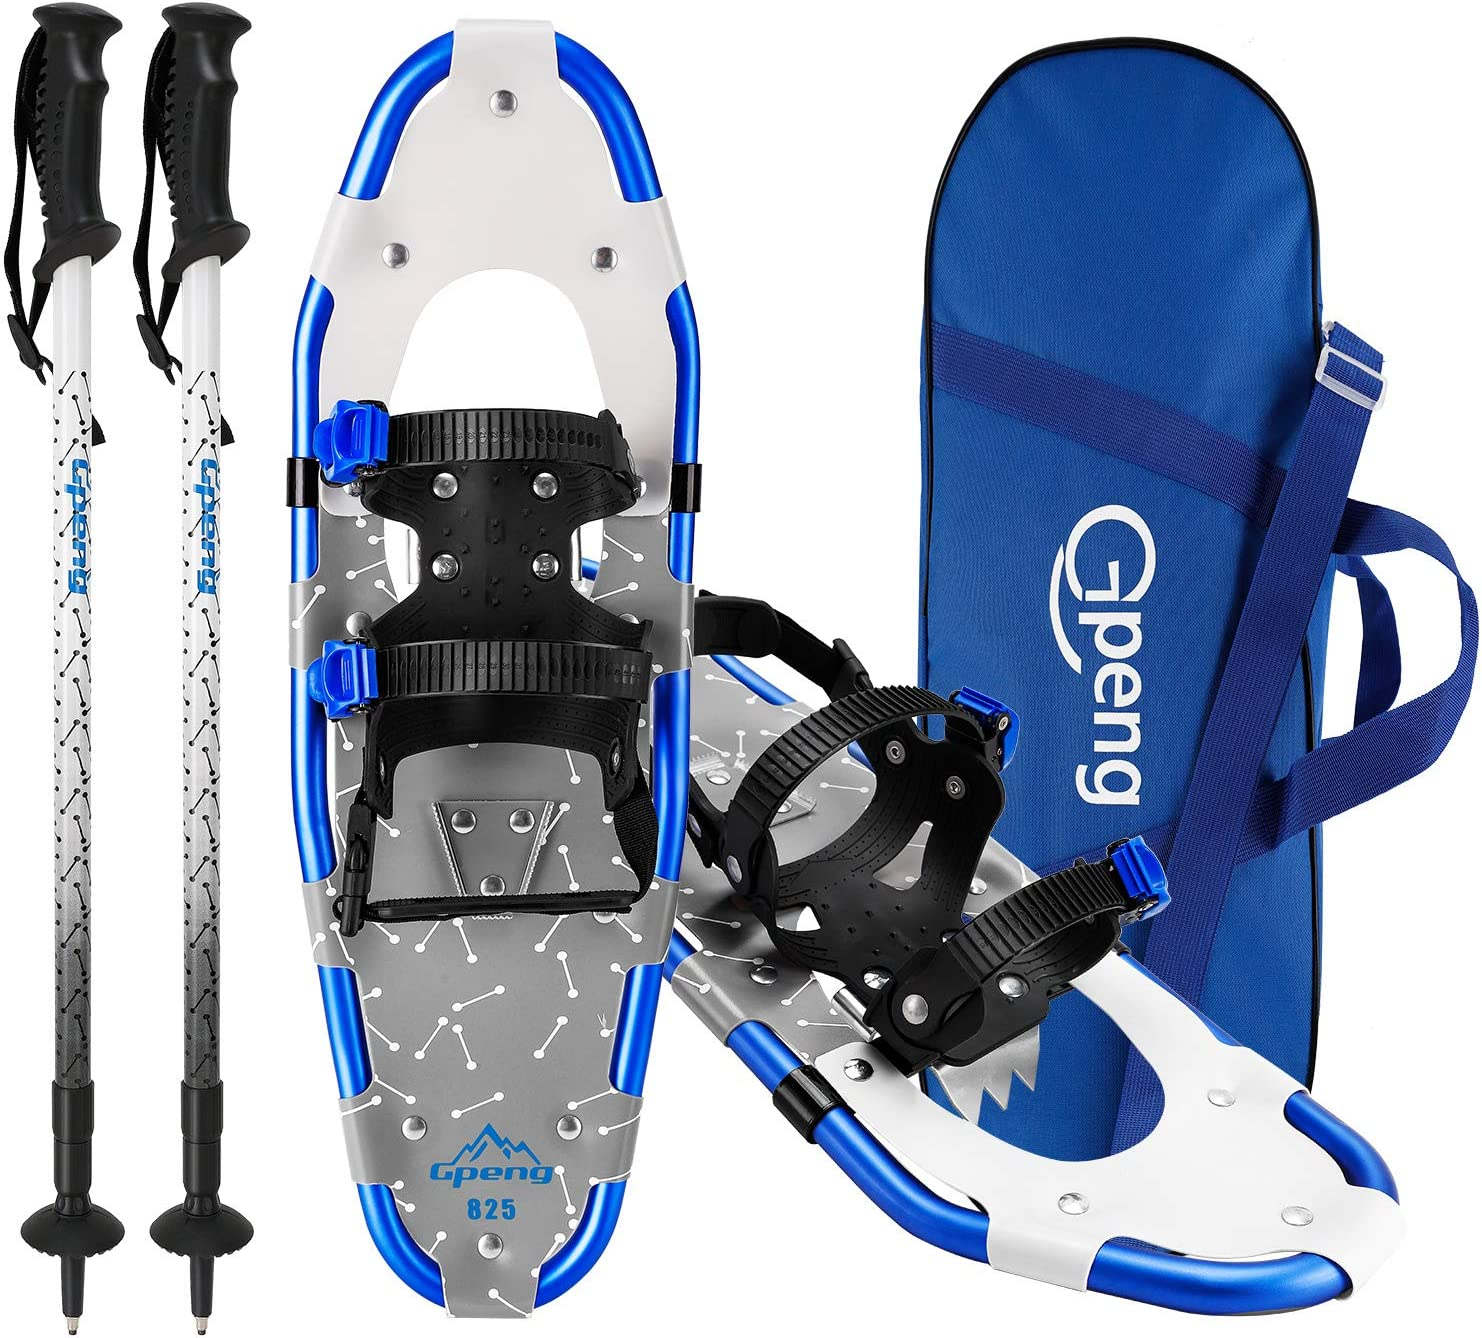 Gpeng Xtreme Lightweight Terrain Snowshoes Set for Men Women Youth Kids Boys Girls, Light Weight Aluminium Alloy Terrain Snow Shoes with Trekking Poles and Carrying Tote Bag, 14 21 25 27 30